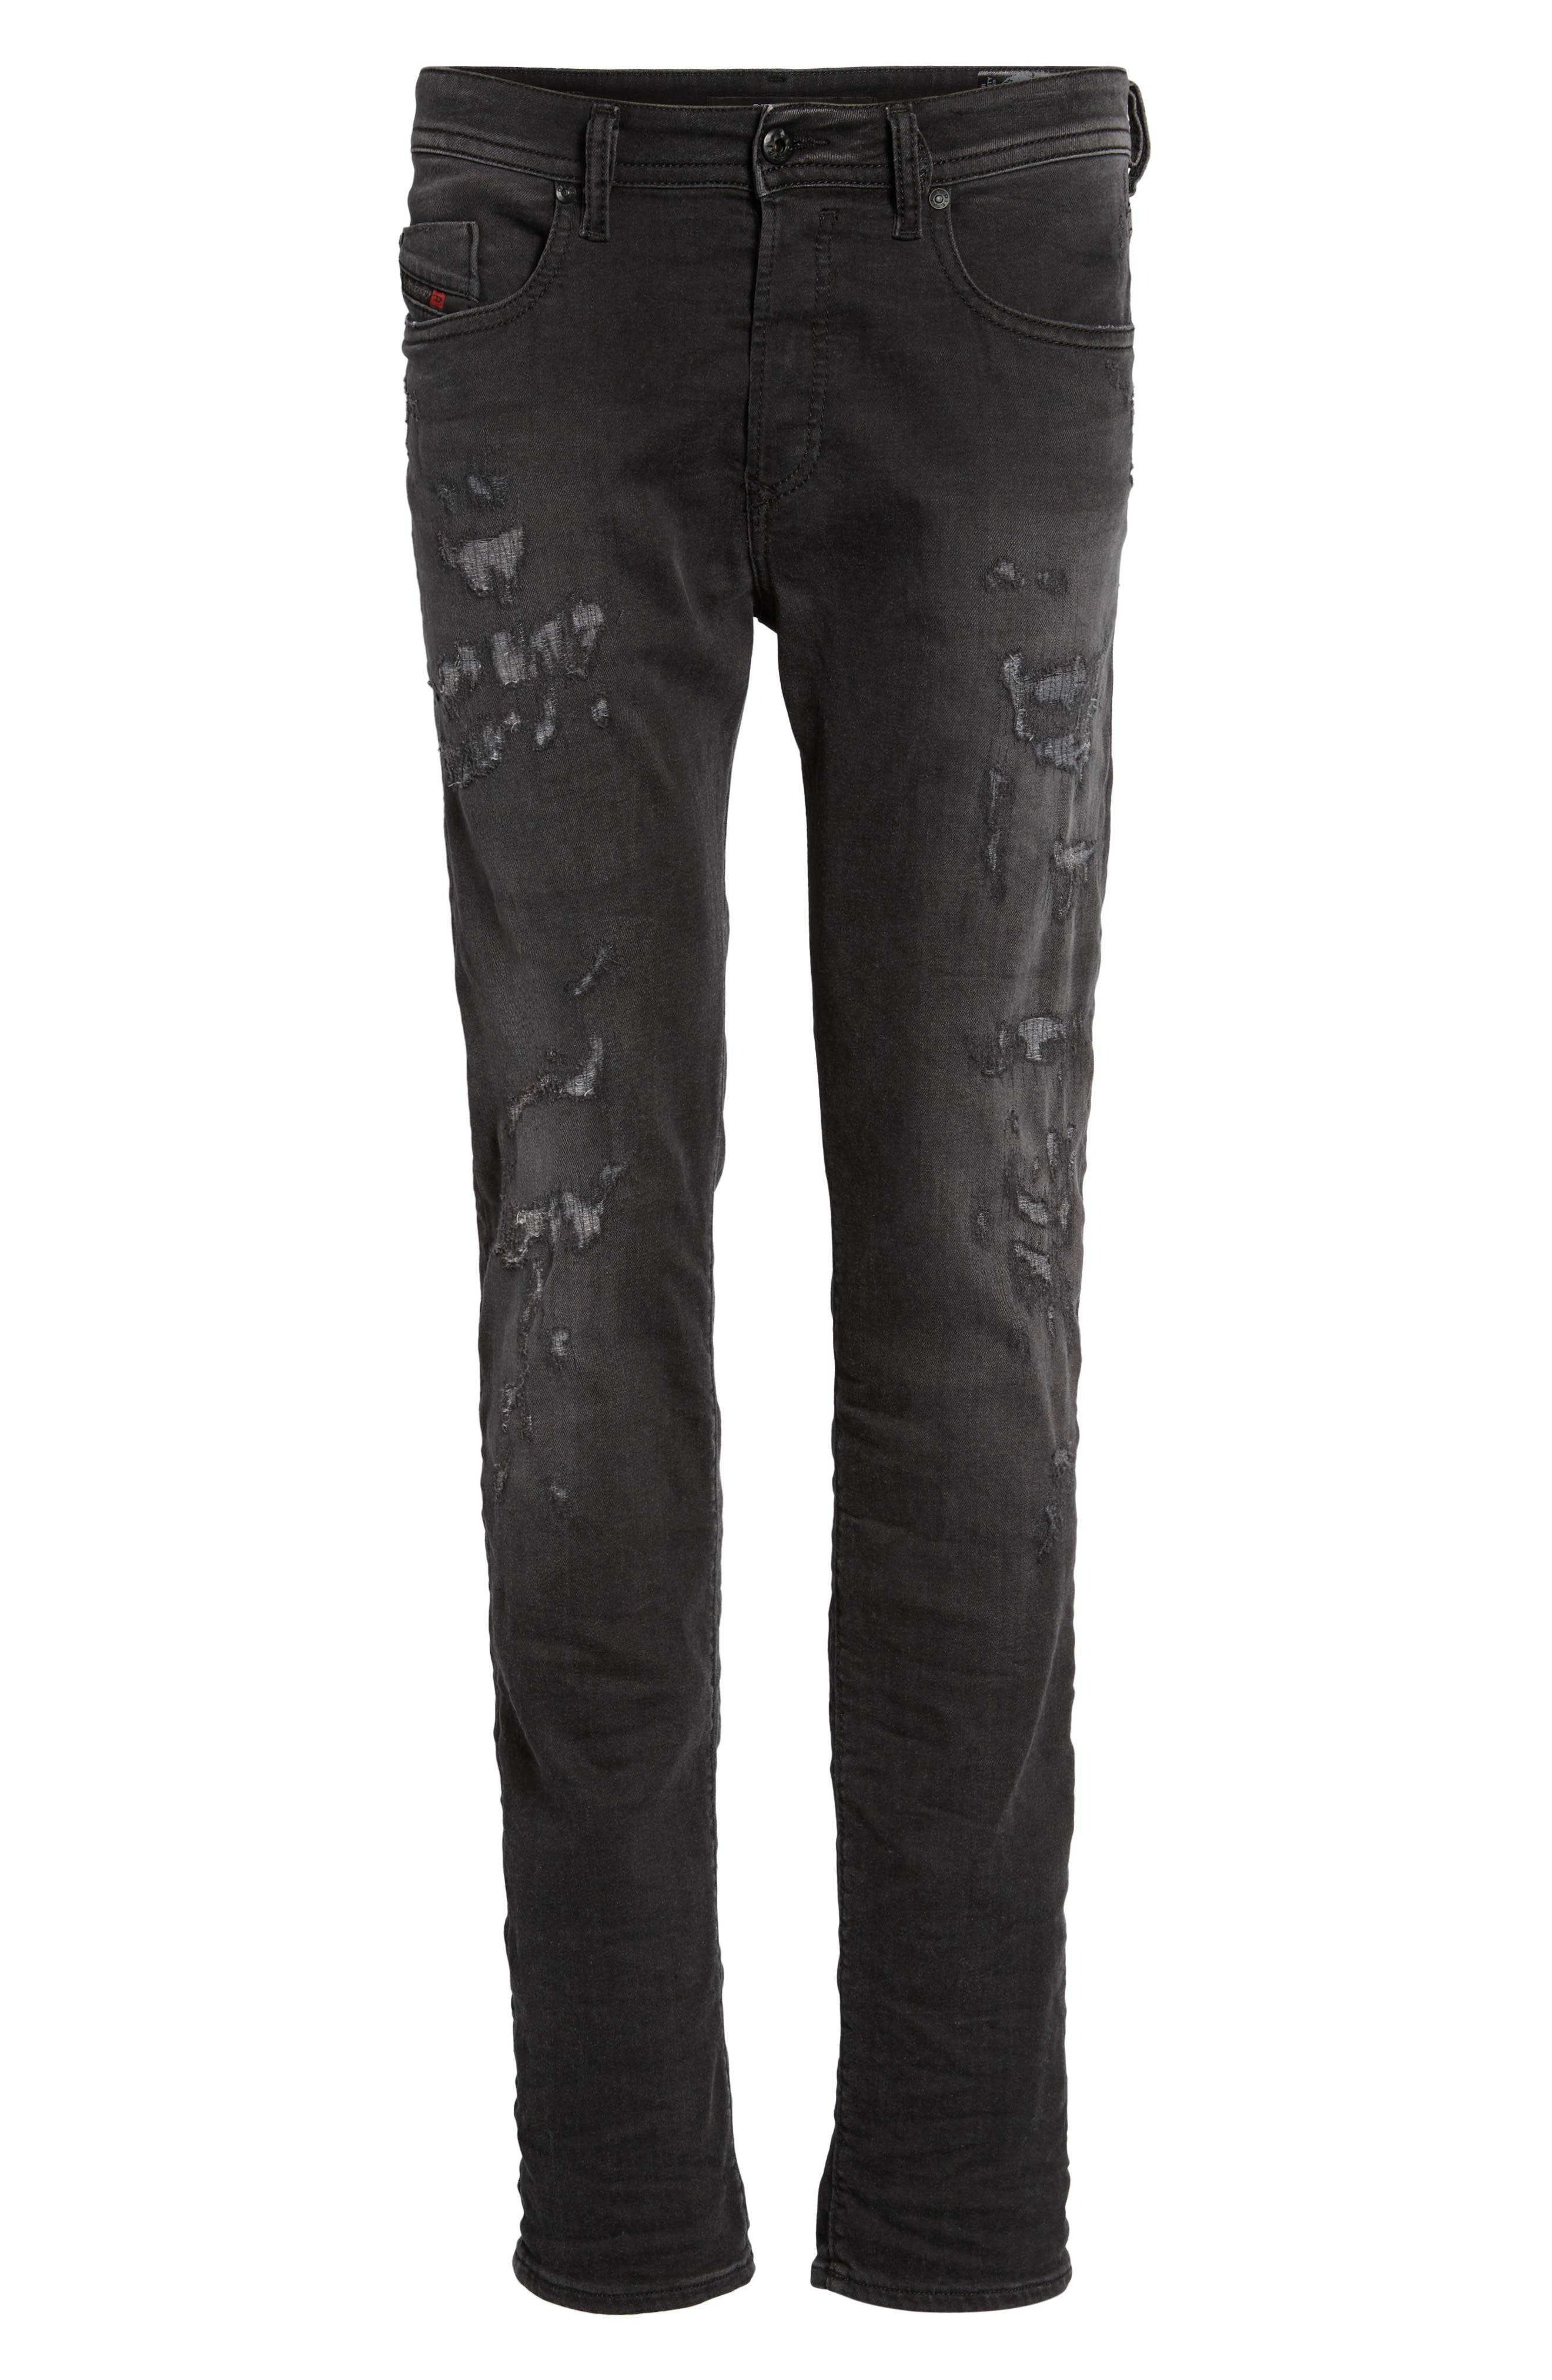 Buster Slim Straight Fit Jeans,                             Alternate thumbnail 6, color,                             008